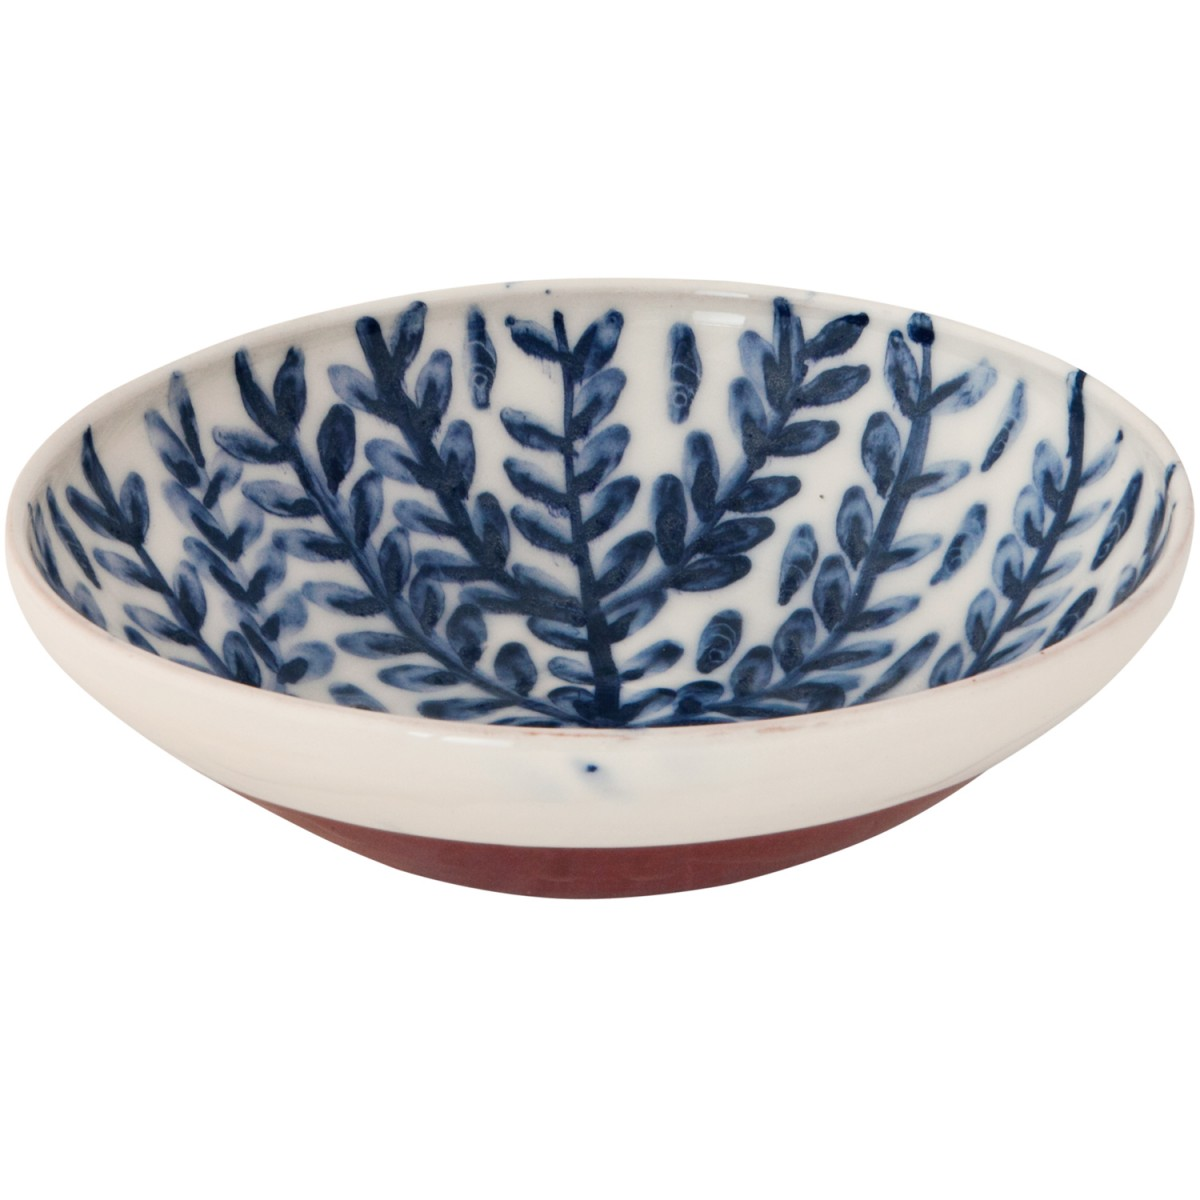 Large Decorative Bowls for tables | Handmade Pottery bowls Tree II-1